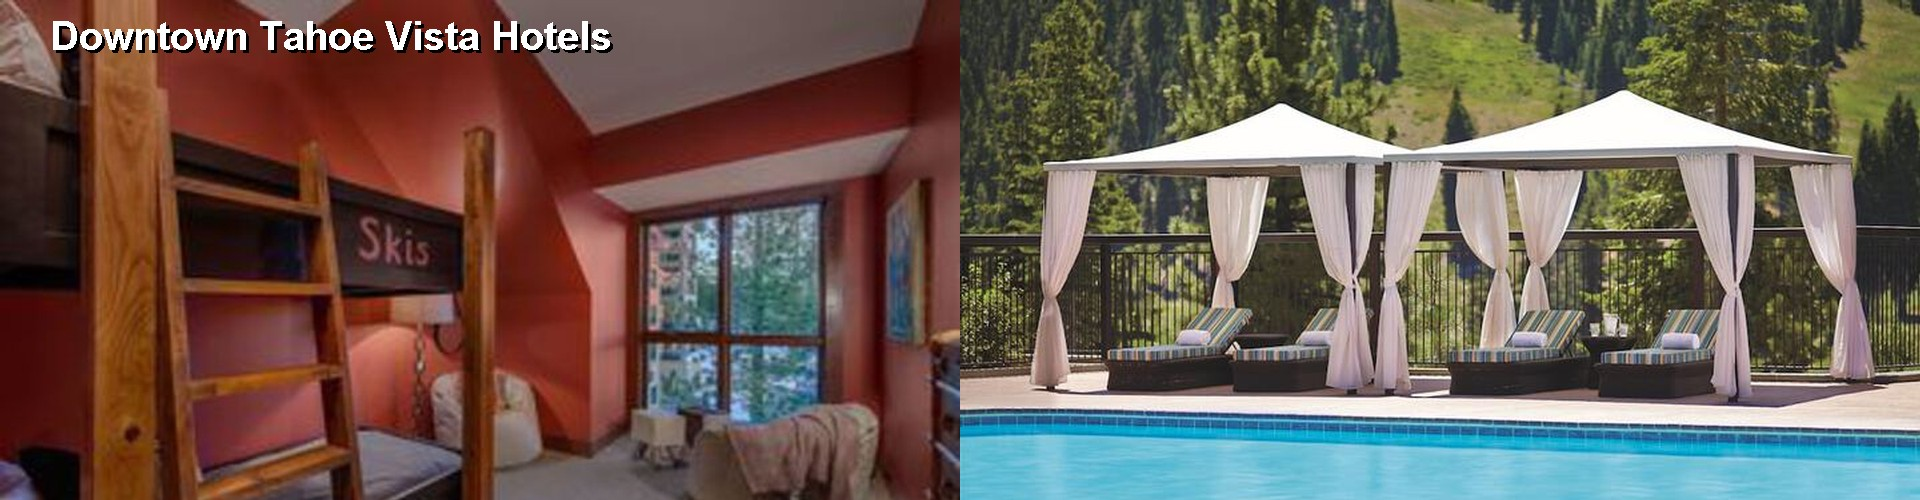 5 Best Hotels near Downtown Tahoe Vista